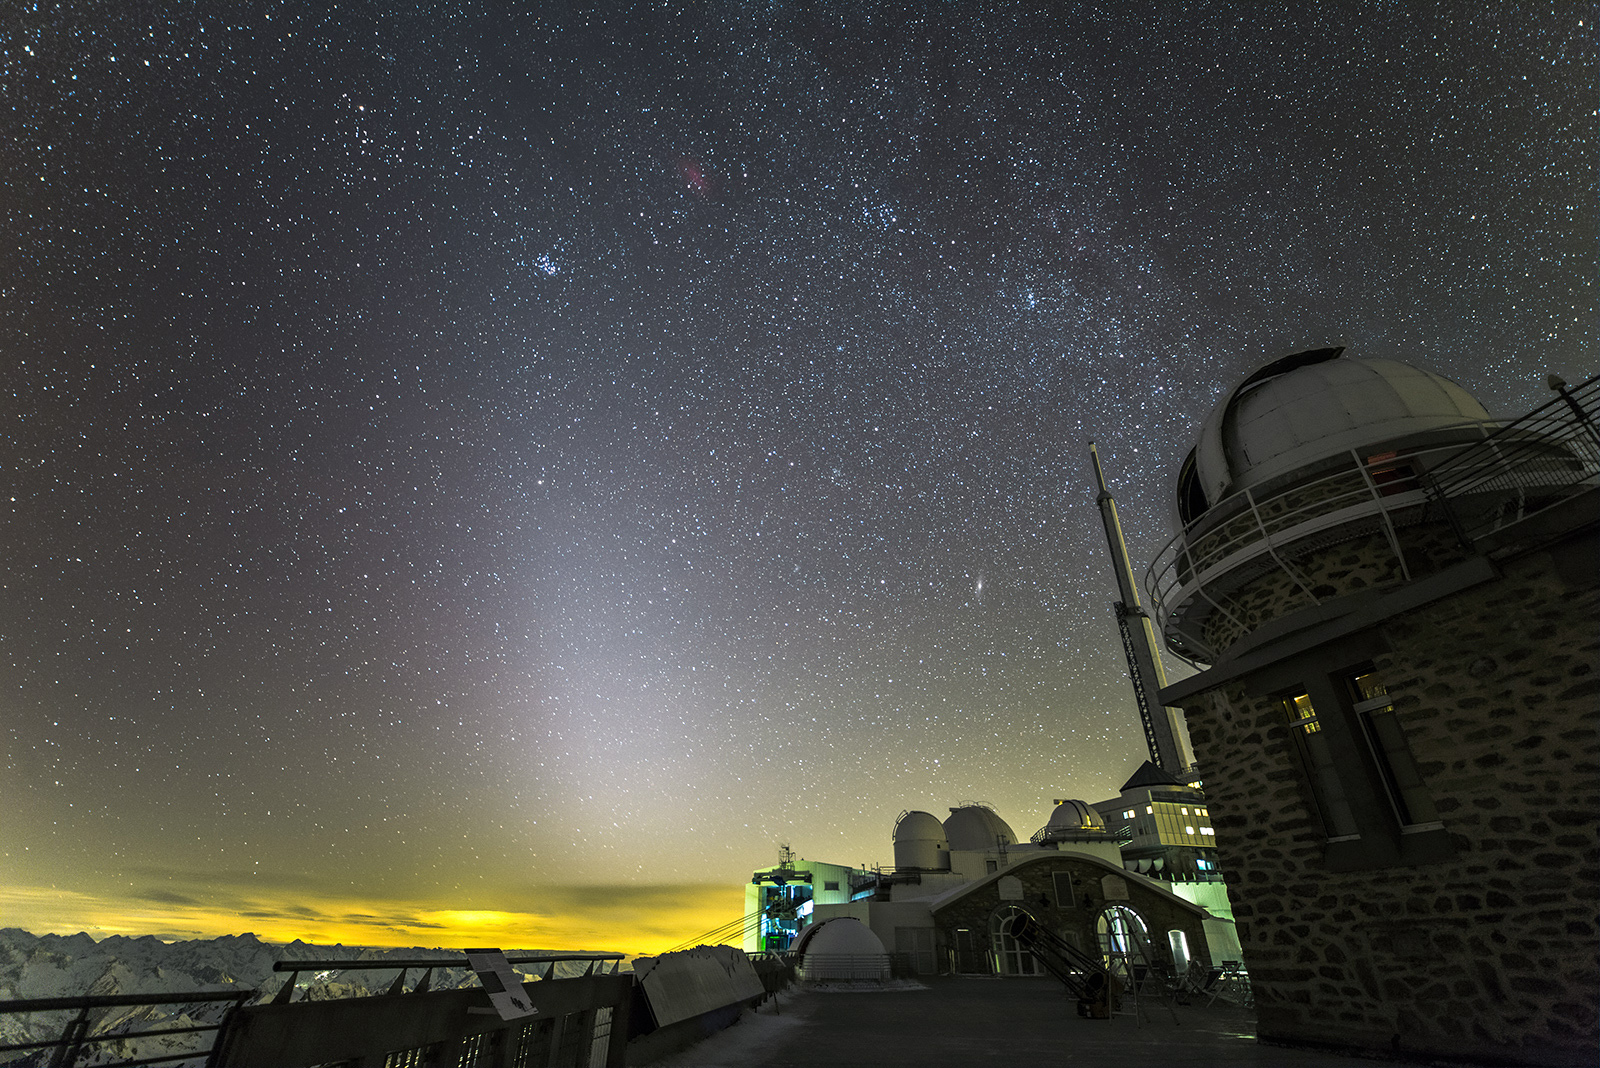 zodiacal_15mm_07.jpg.bb6fcfa56254202aa928f0f58d711c56.jpg